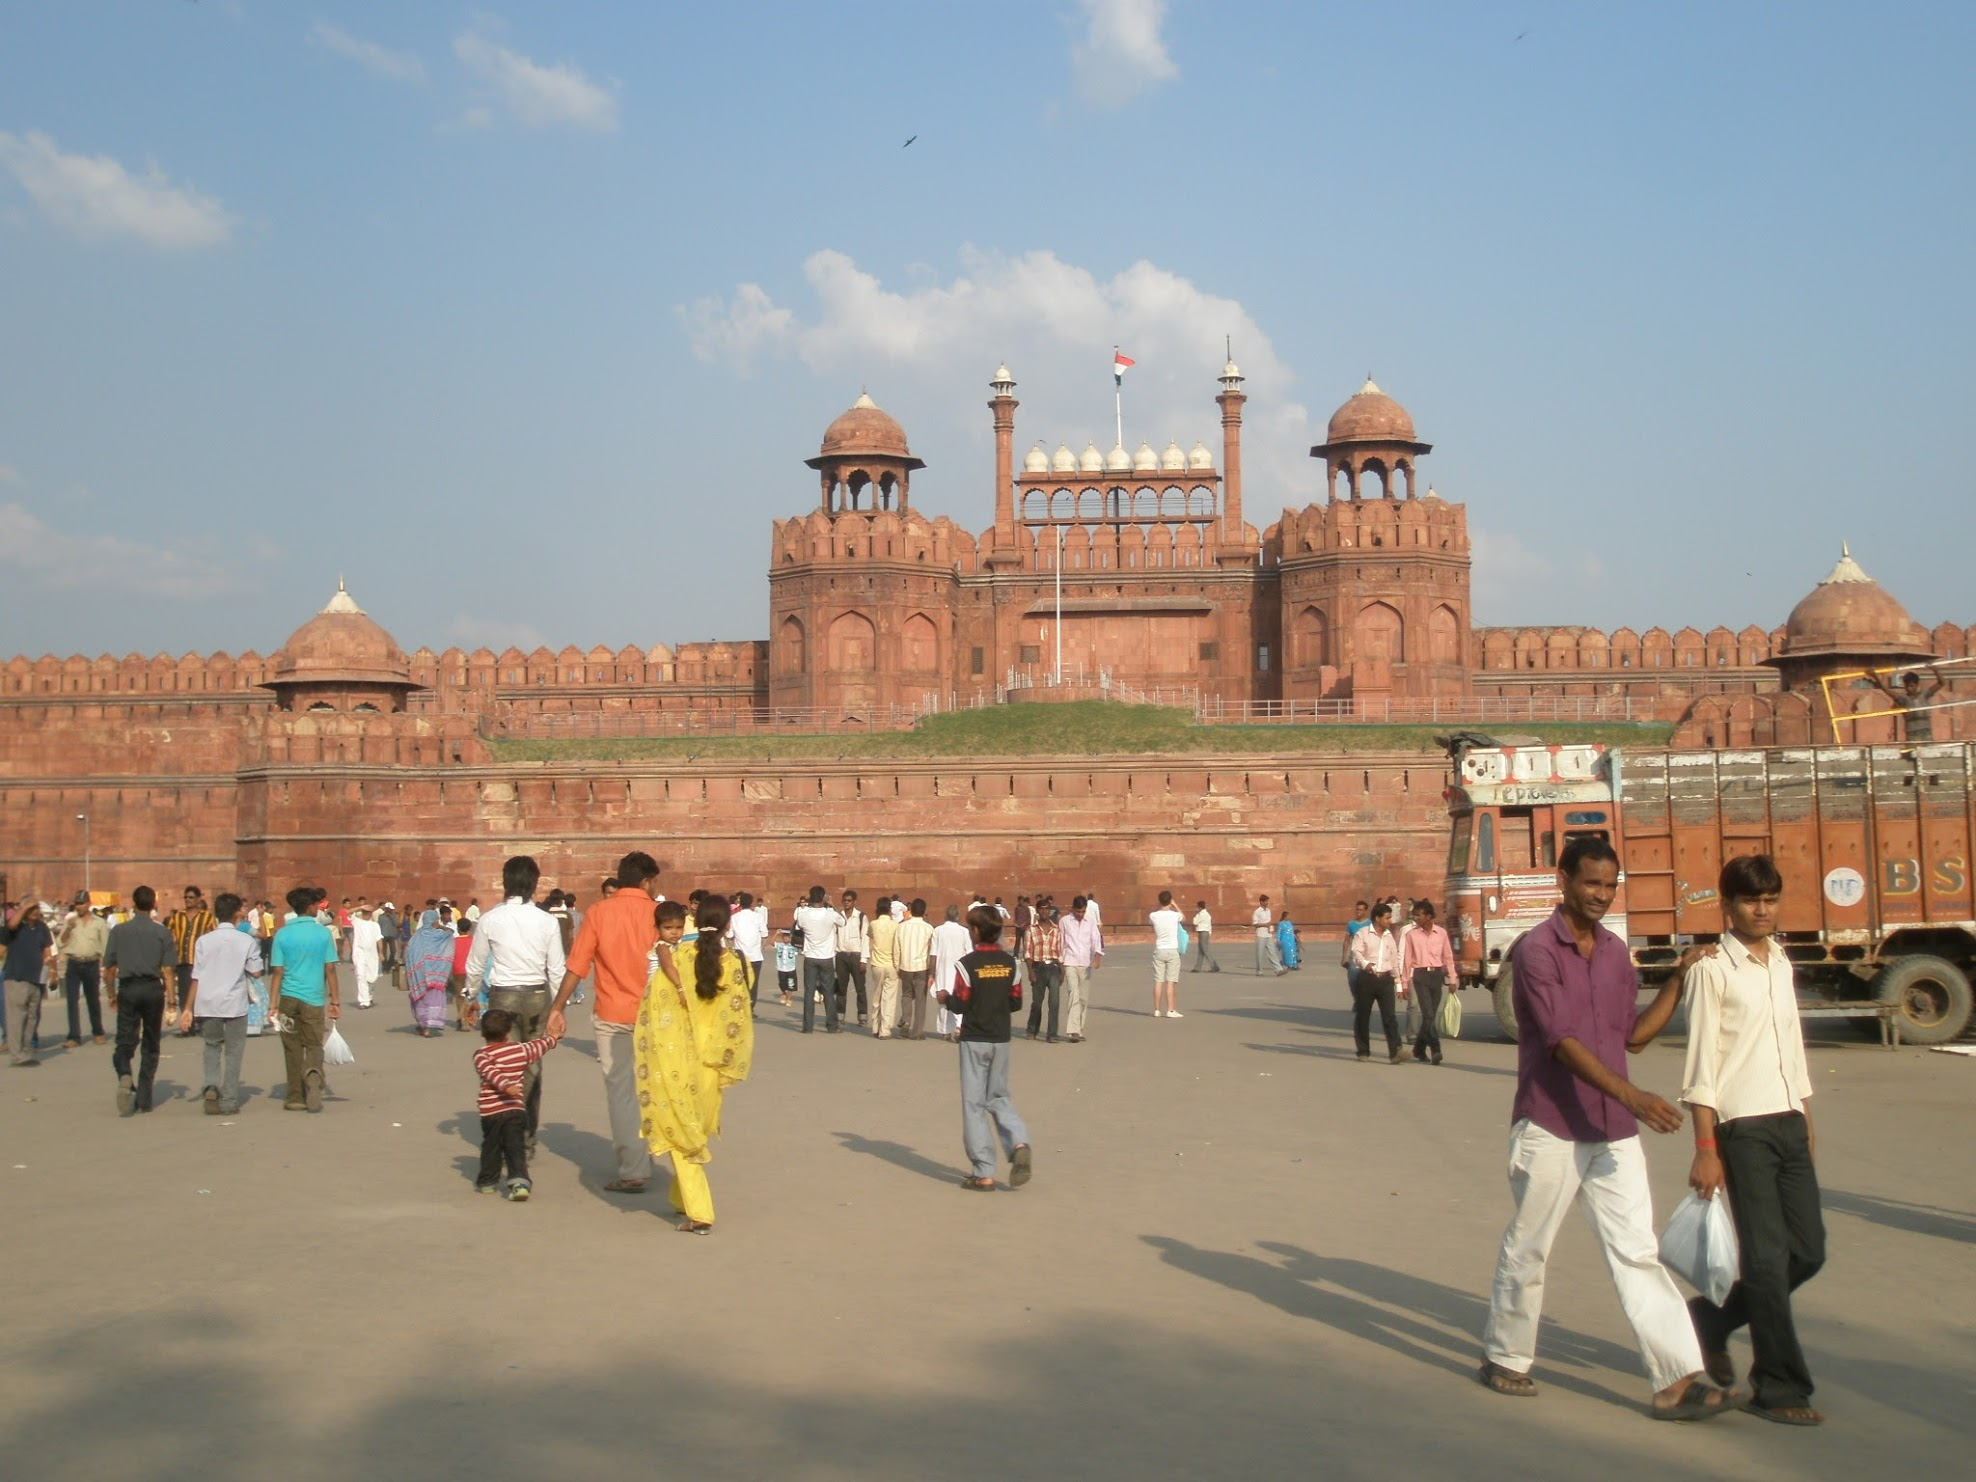 The Red Fort from the front.